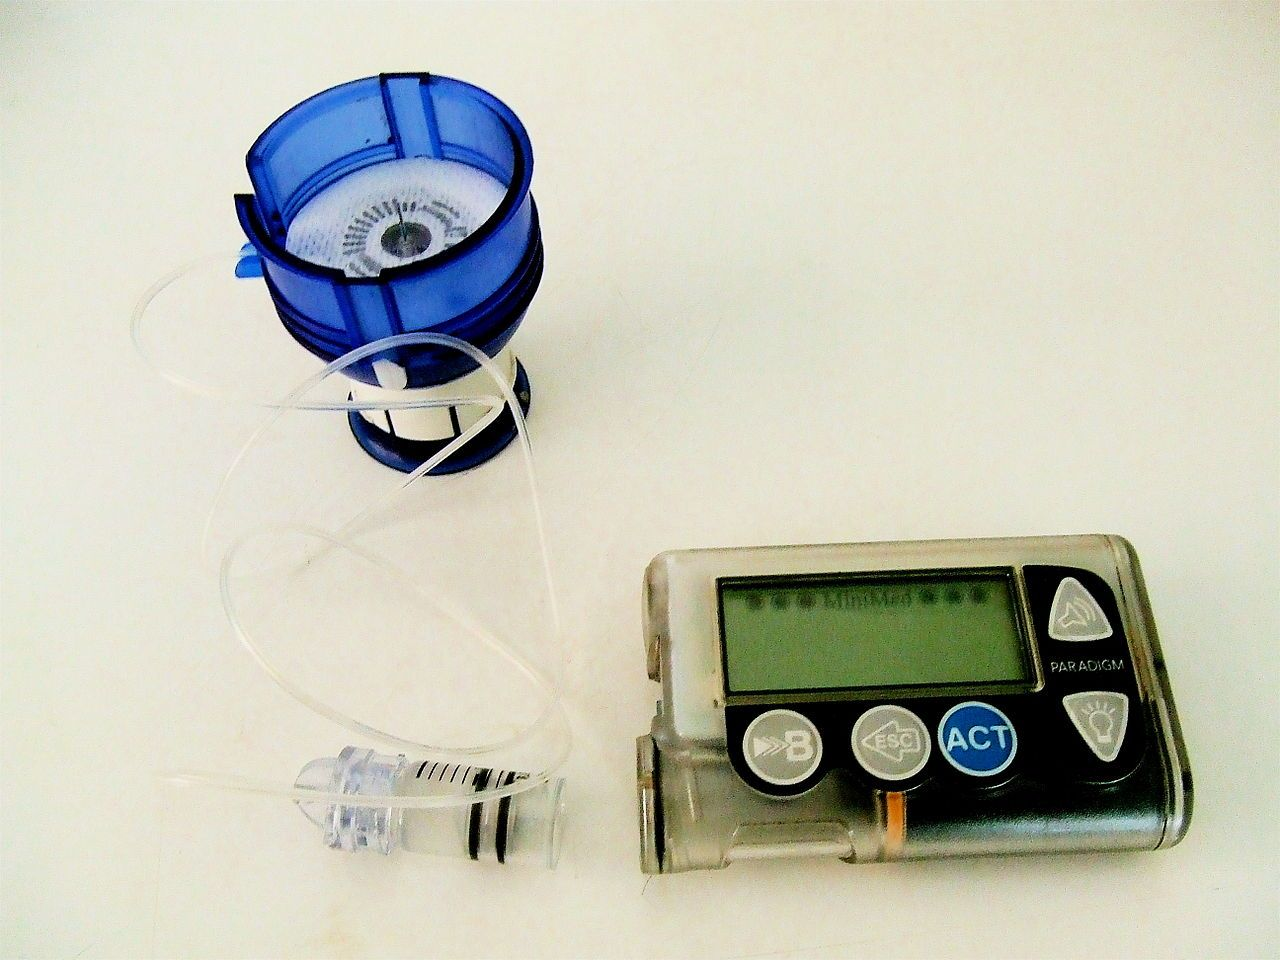 wikipedia-insulin-pump-and-infusion-set-1280.jpg